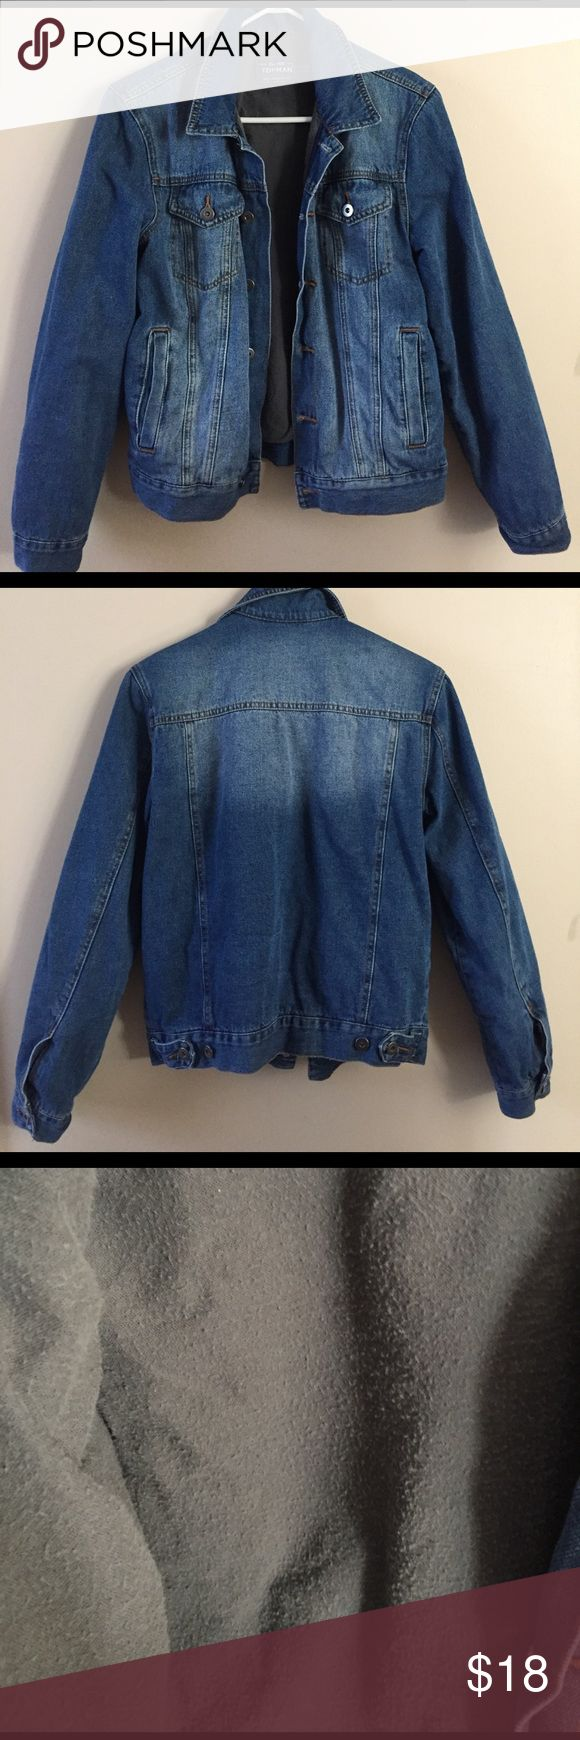 Topman Thick Jean Jacket Bought on portobello road in London! Has a warm thick inside (which is pretty pilled) Topshop Jackets & Coats Jean Jackets